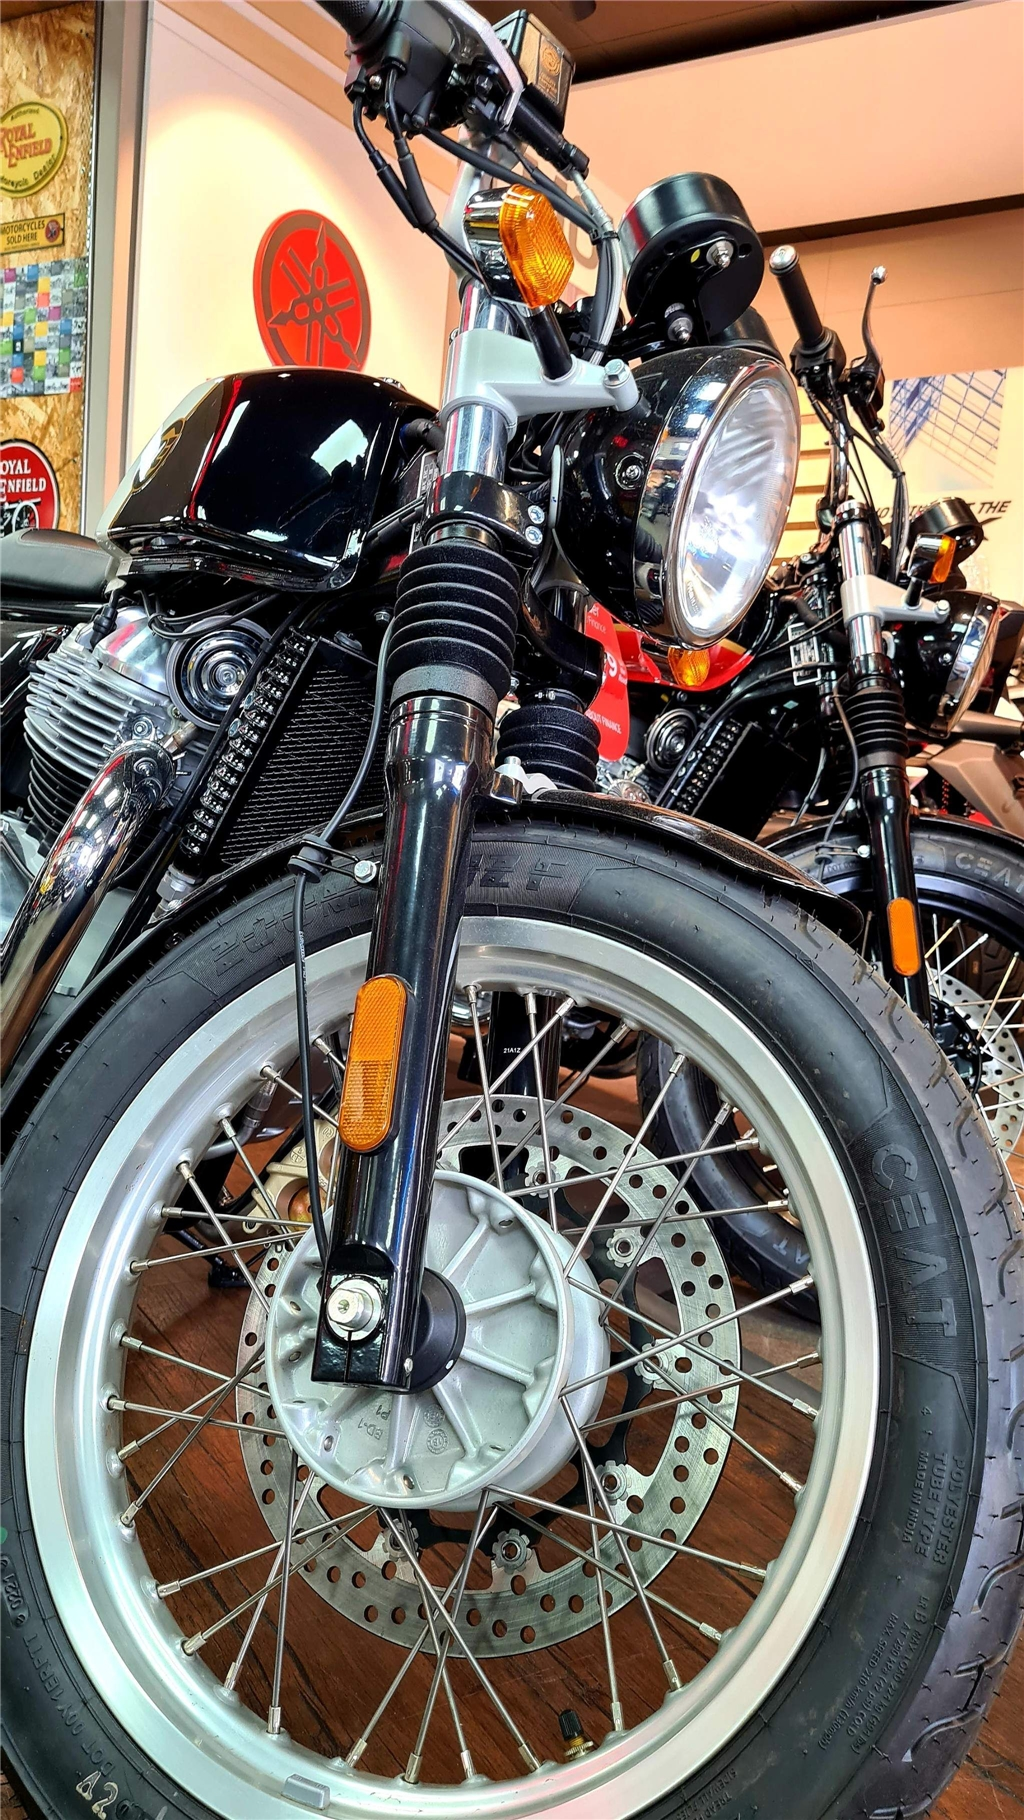 Royal Enfield Continental GT 650 Twin 650 Dual Colour ABS - Image 37